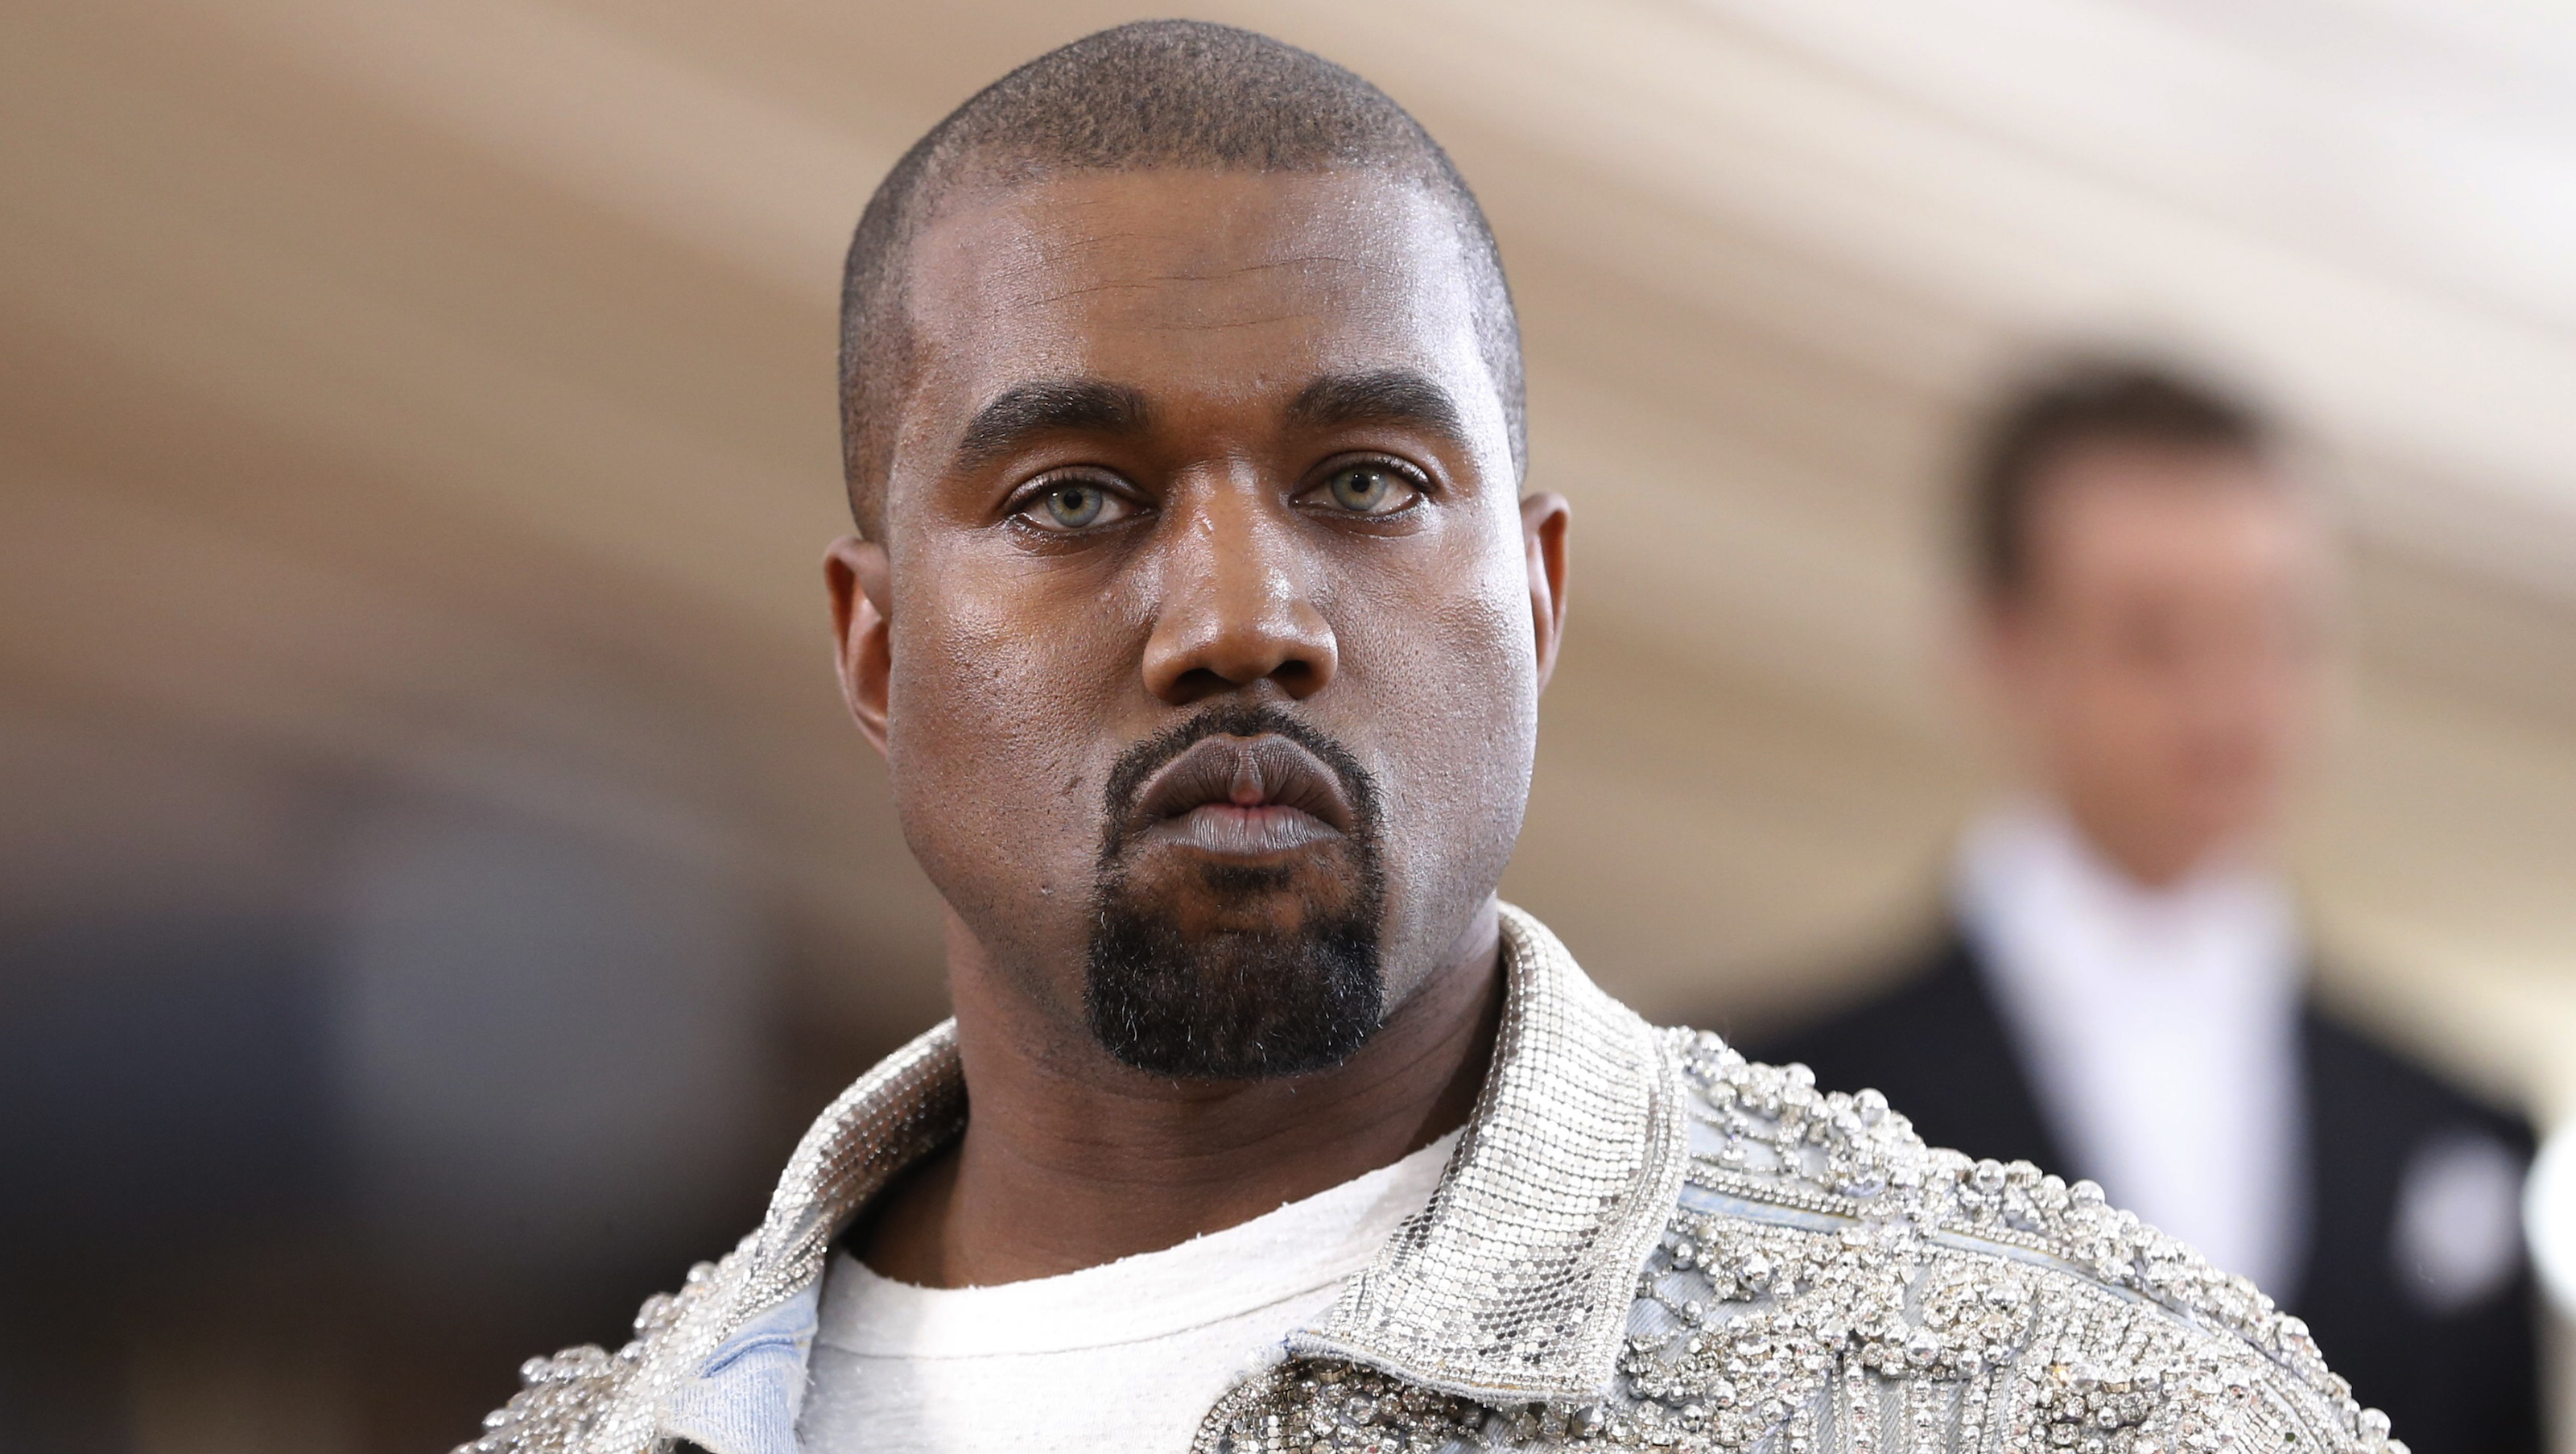 """Entertainer Kanye West arrives at the Metropolitan Museum of Art Costume Institute Gala (Met Gala) to celebrate the opening of """"Manus x Machina: Fashion in an Age of Technology"""" in the Manhattan borough of New York, May 2, 2016. REUTERS/Lucas Jackson - RTX2CJDO"""